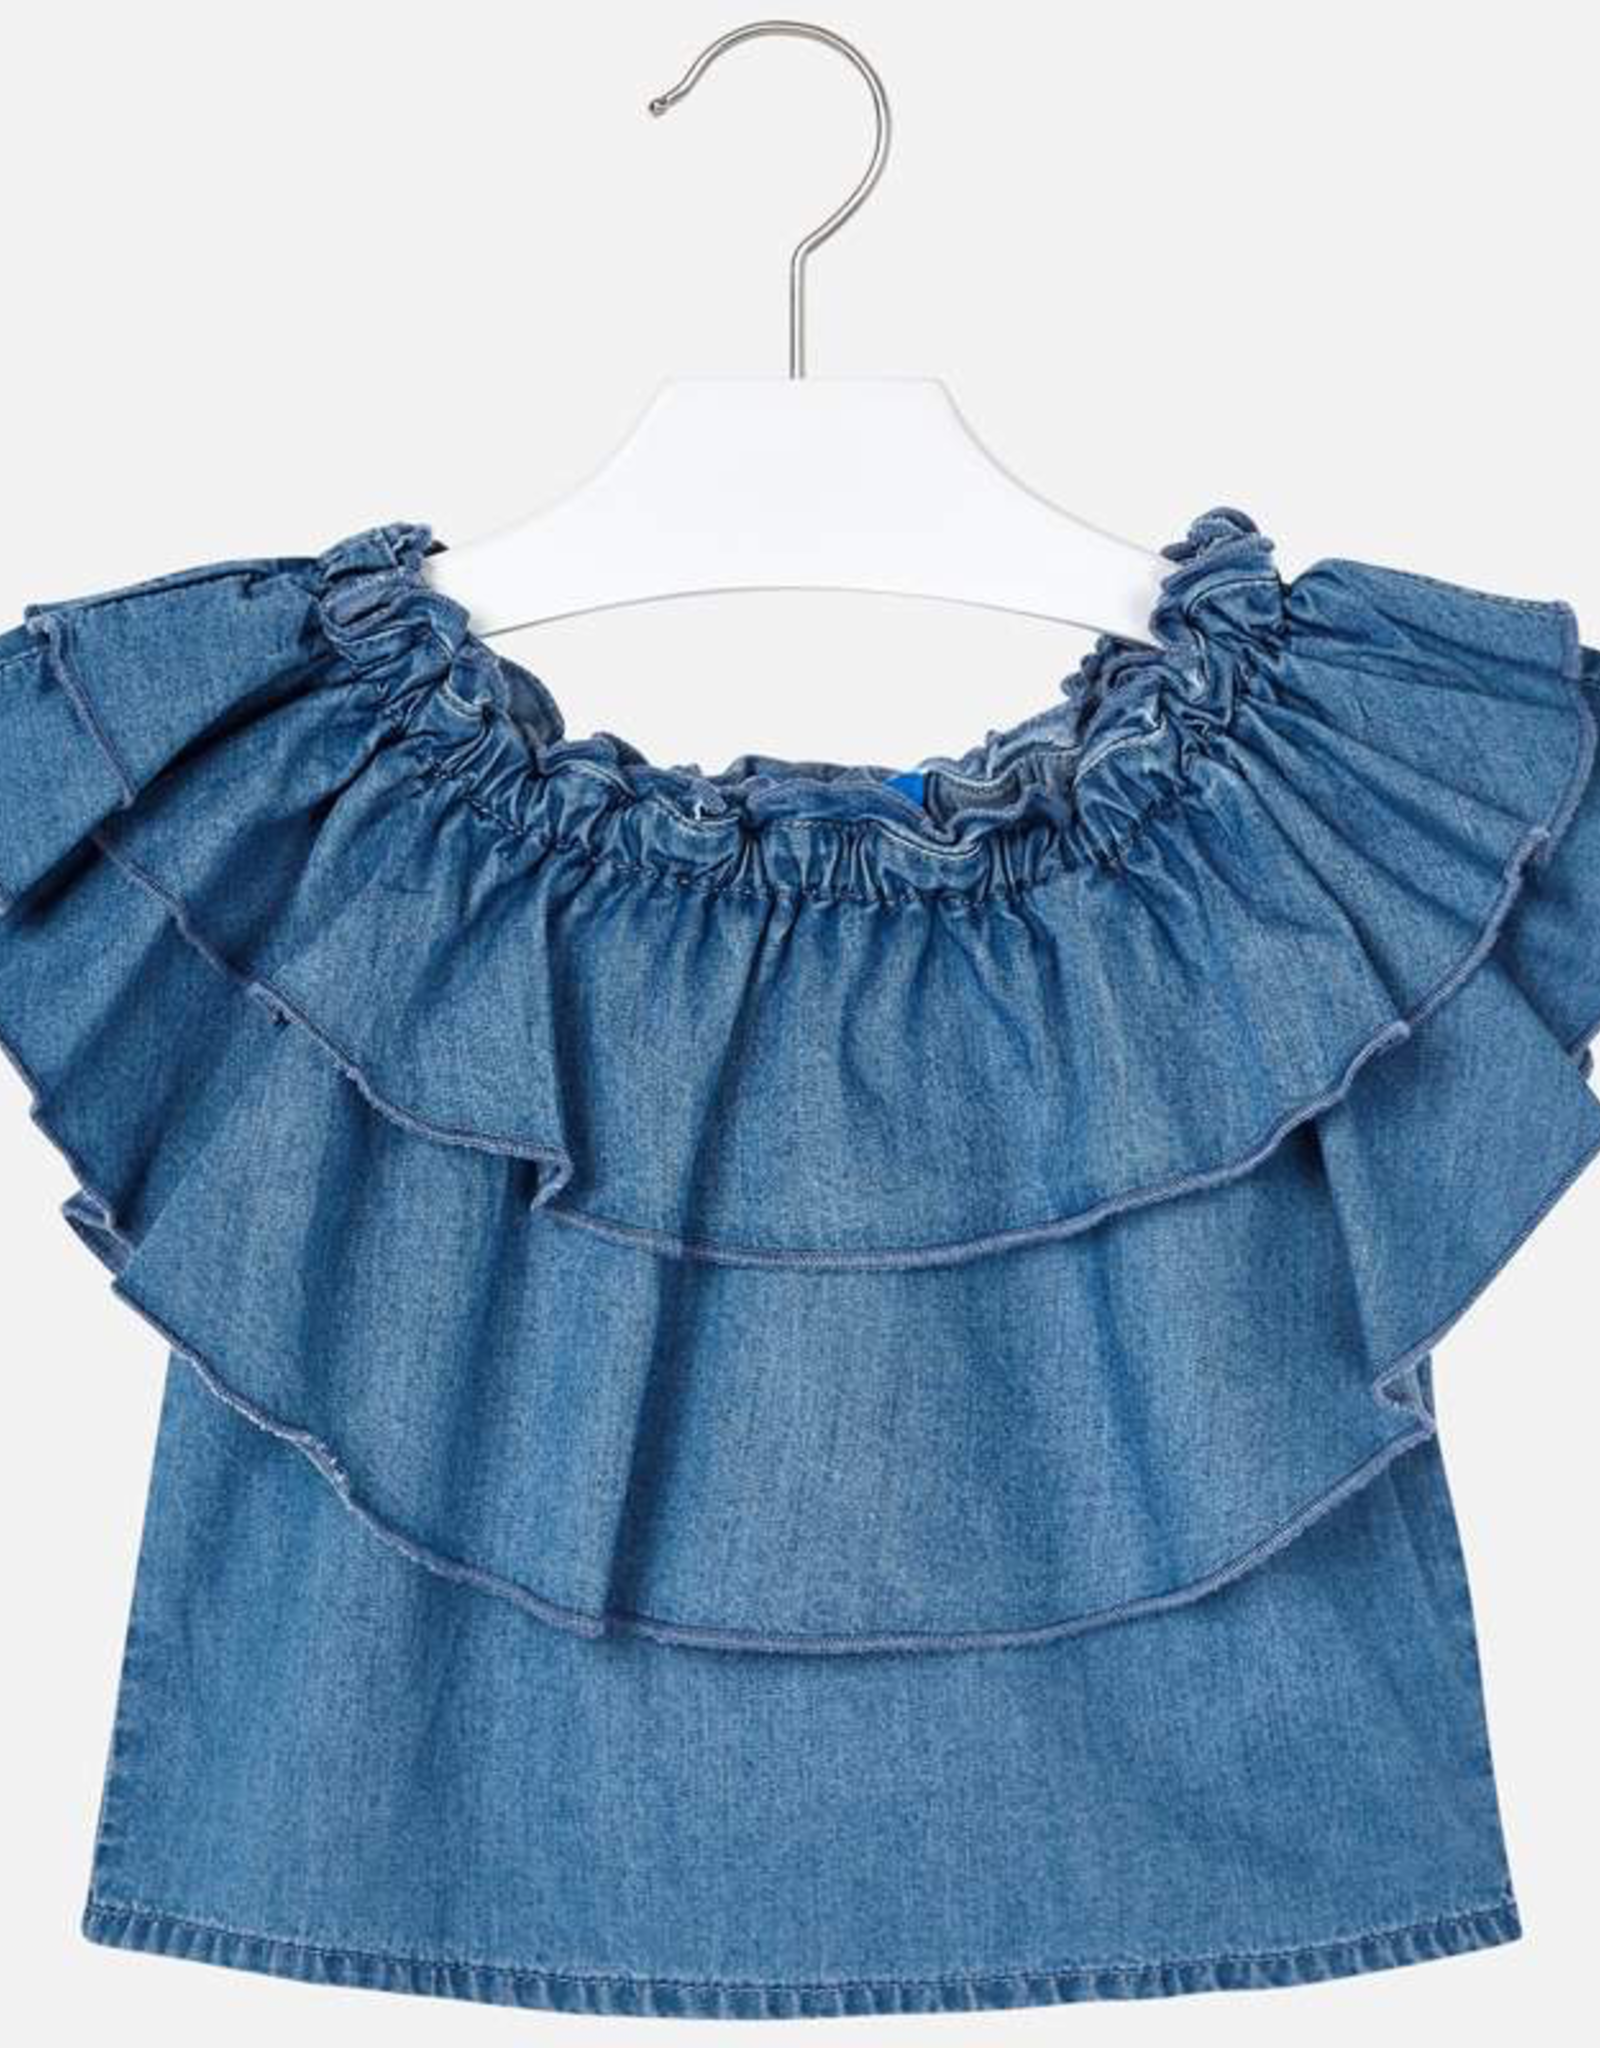 Mayoral Round Neck Collar Blouse for Girl